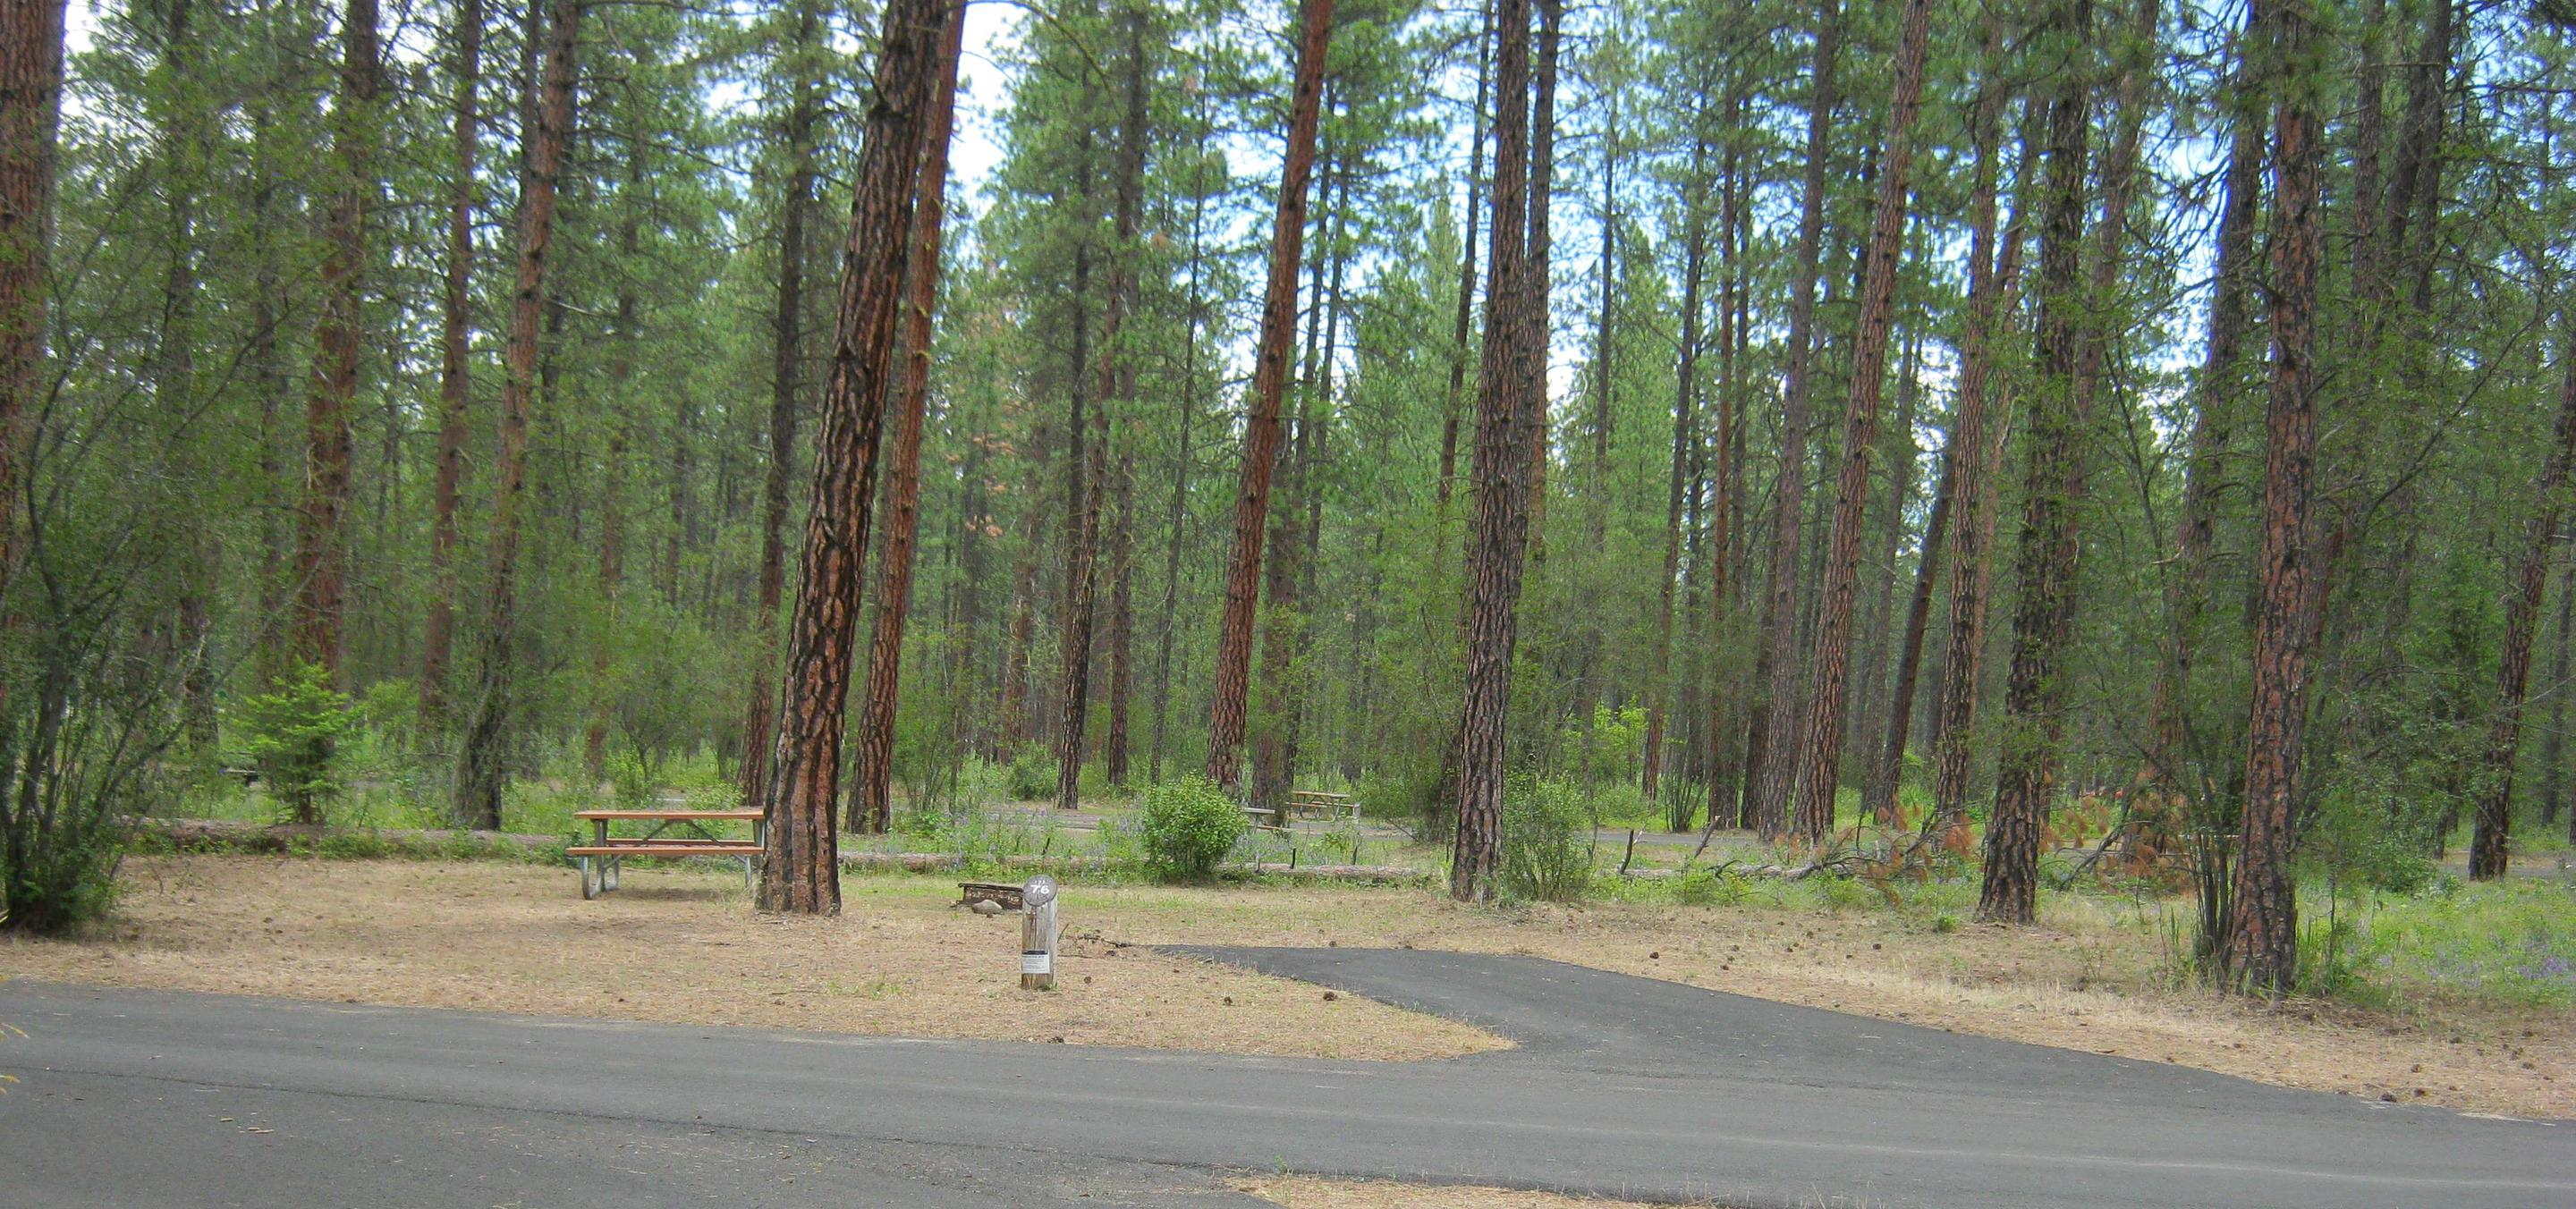 Wide view 76Wide view of site 76, Back in, trees in background